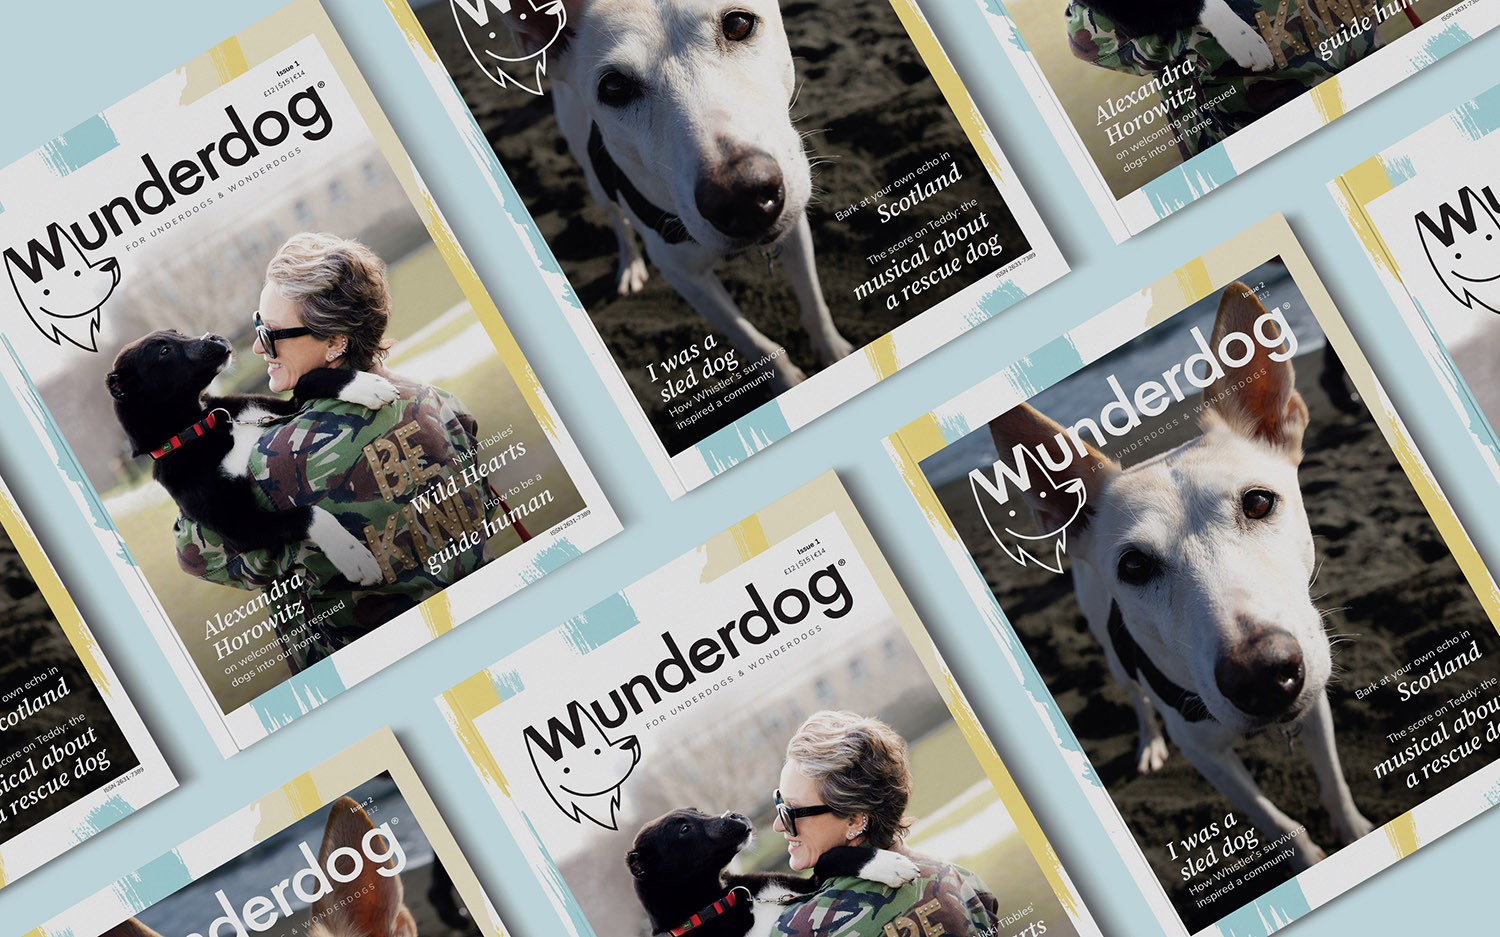 designing-wunderdog-the-feel-good-magazine-for-rescue-dog-lovers